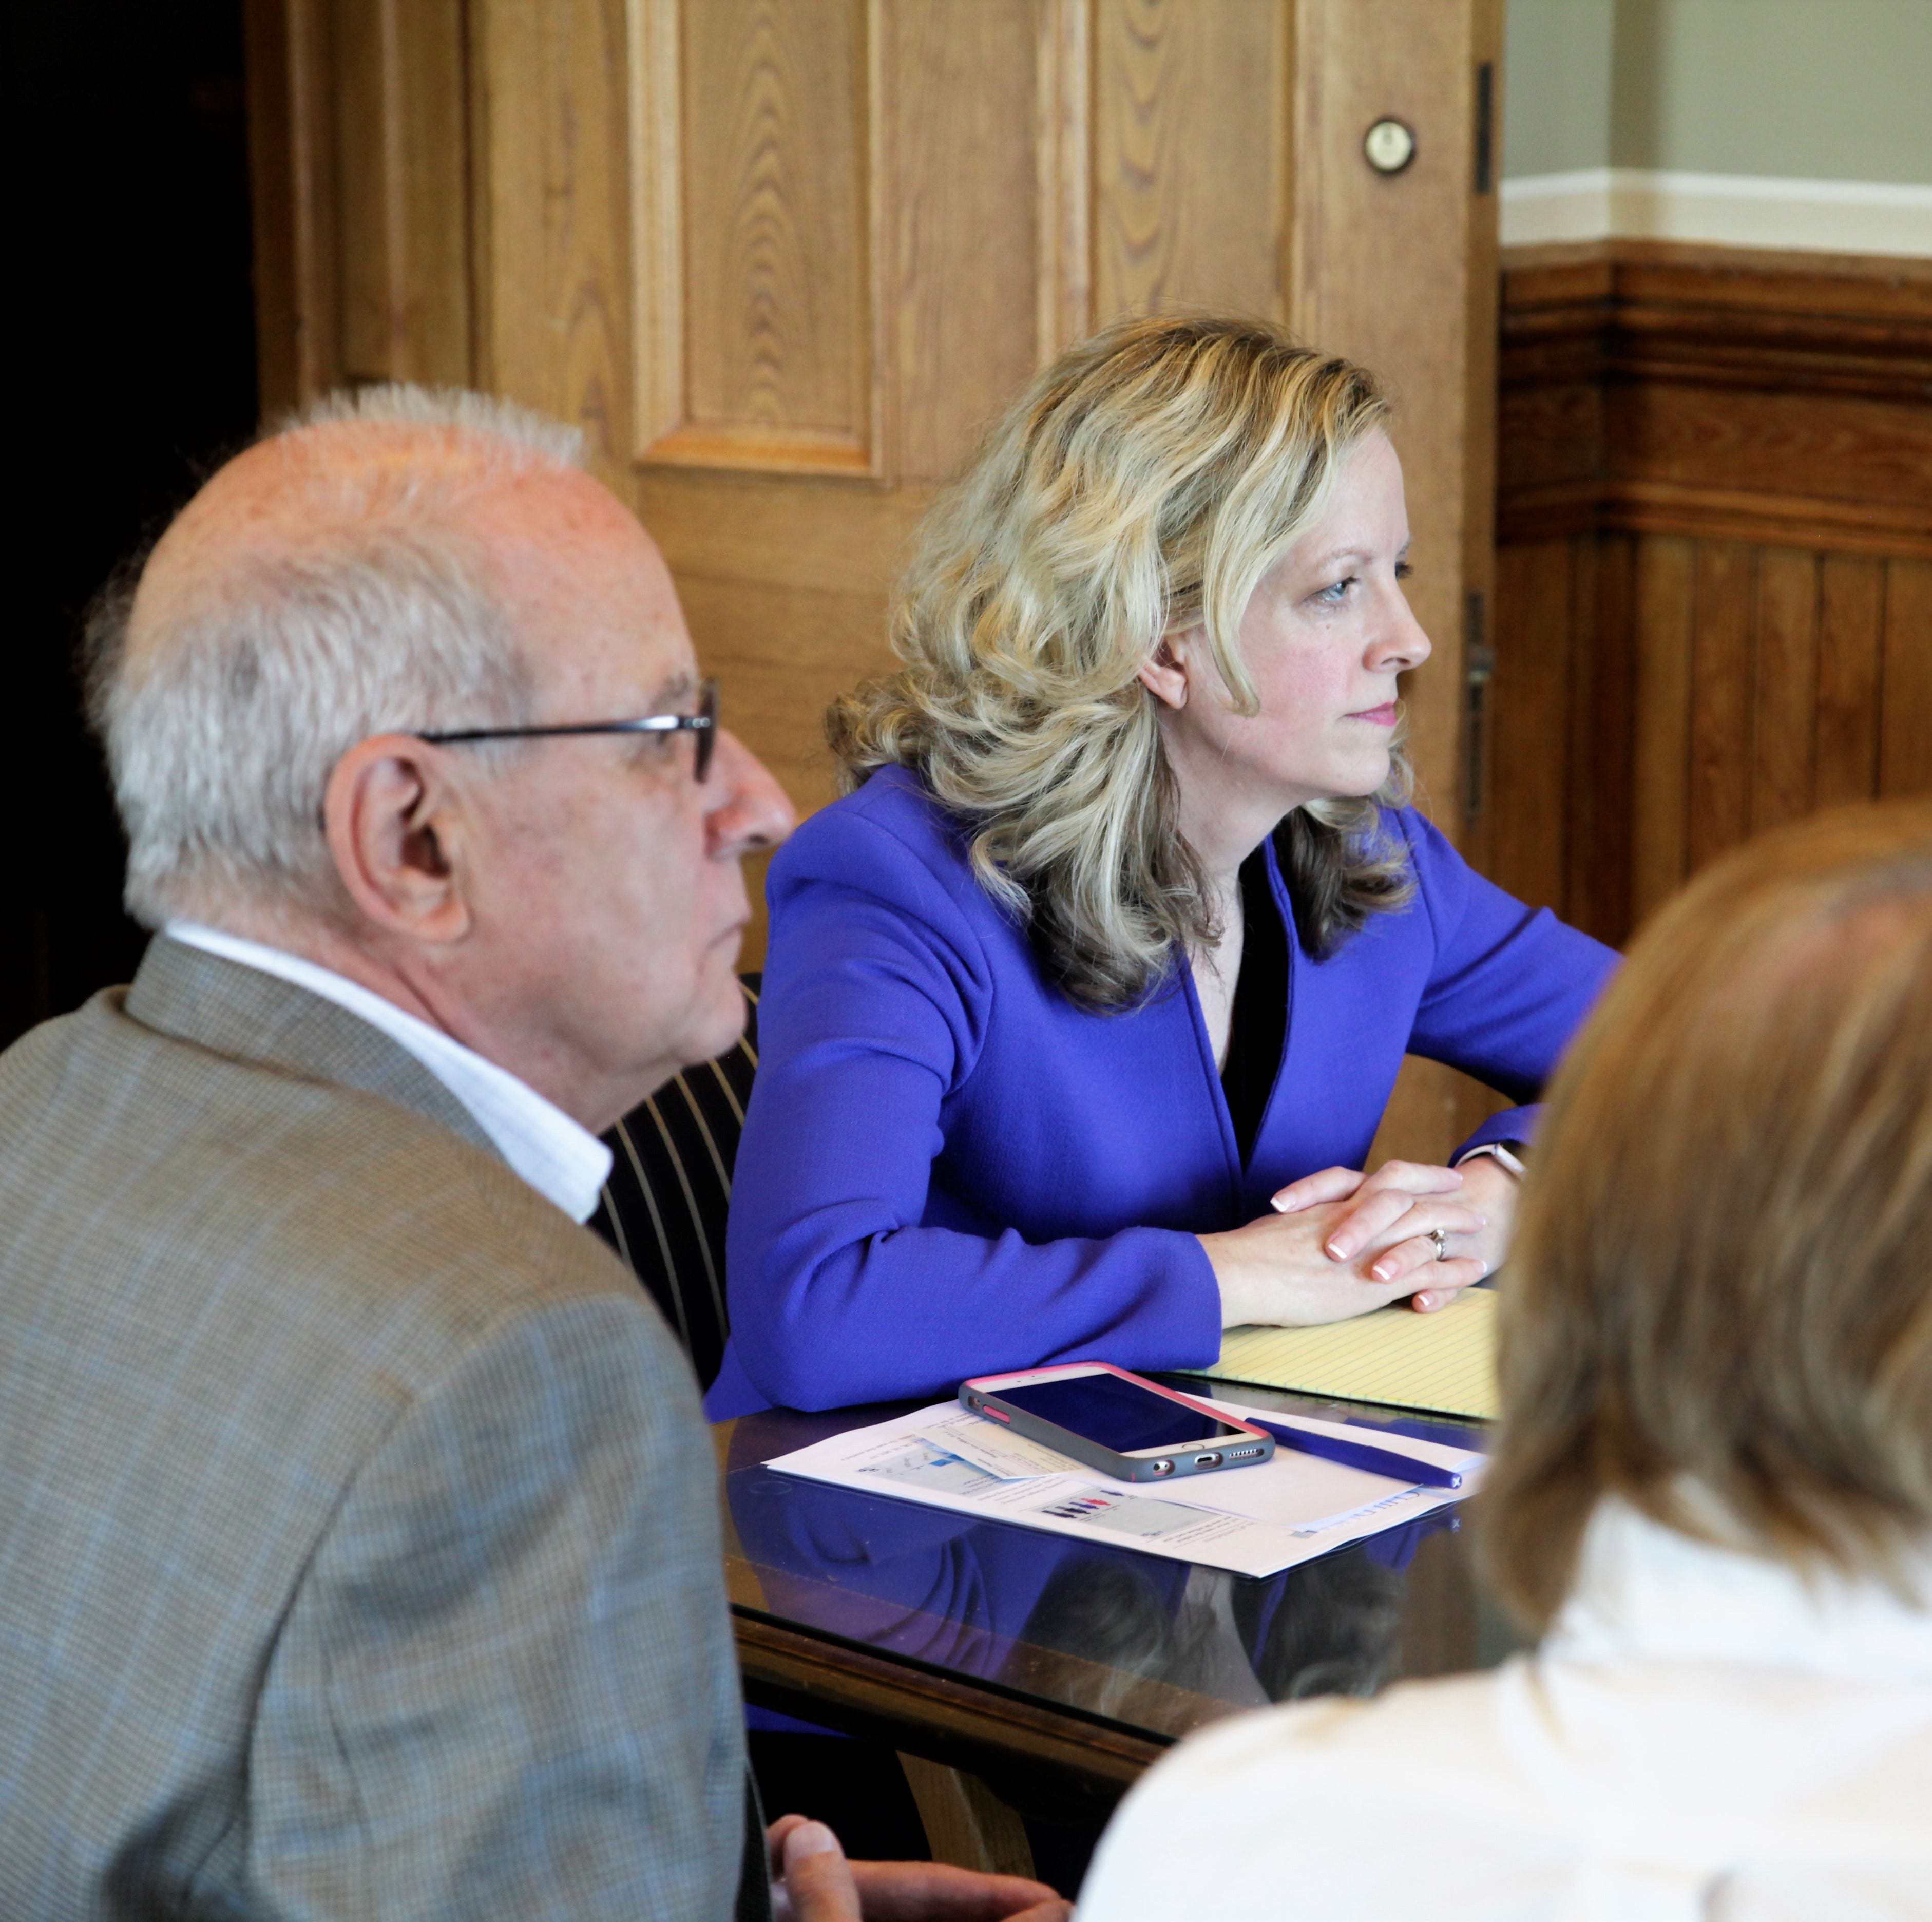 Clergy abuse victims fighting to extend statute of limitations in Iowa